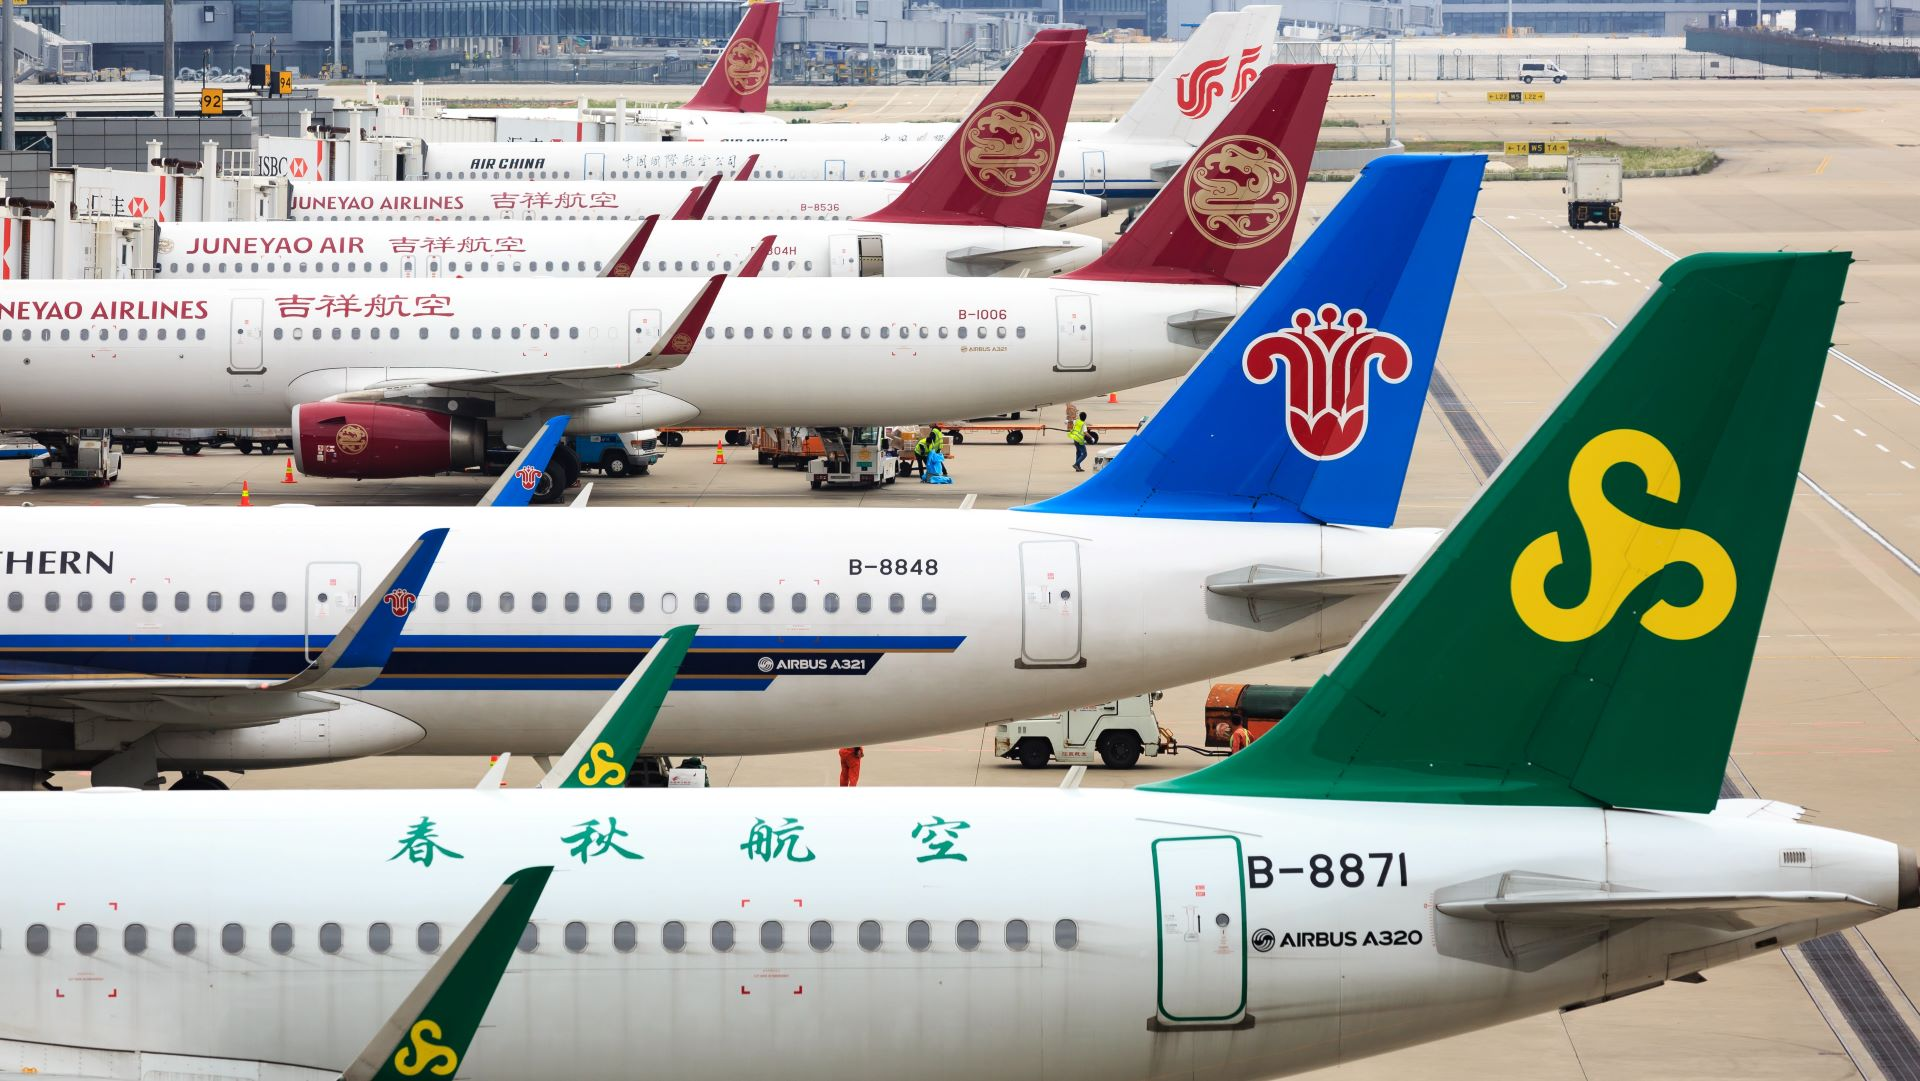 Planes parked at Shanghai Airport in a row.